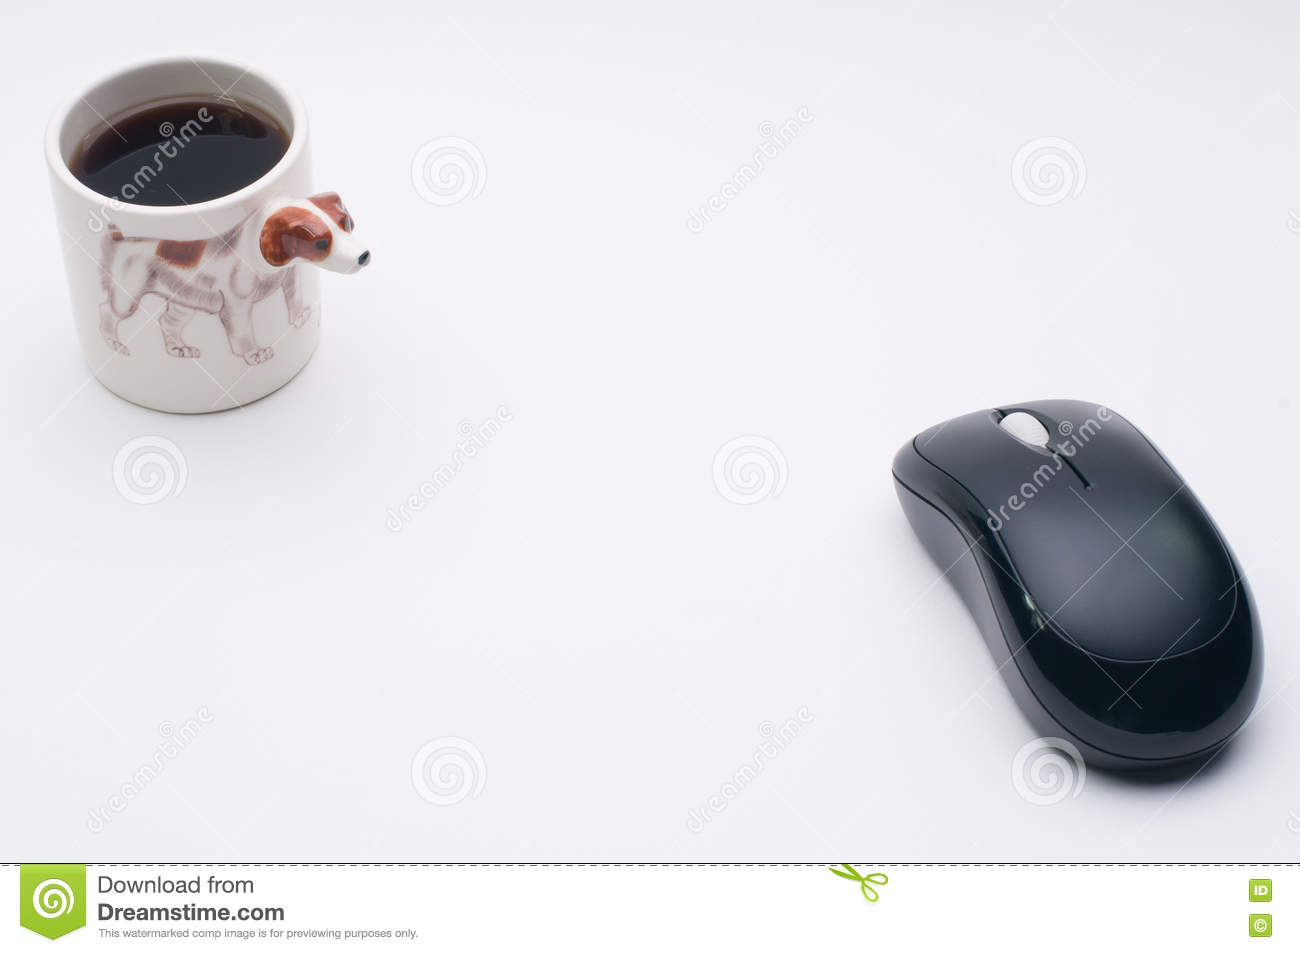 Computer wireless mouse, cup of coffee, Jack Russel dog side of coffee cup